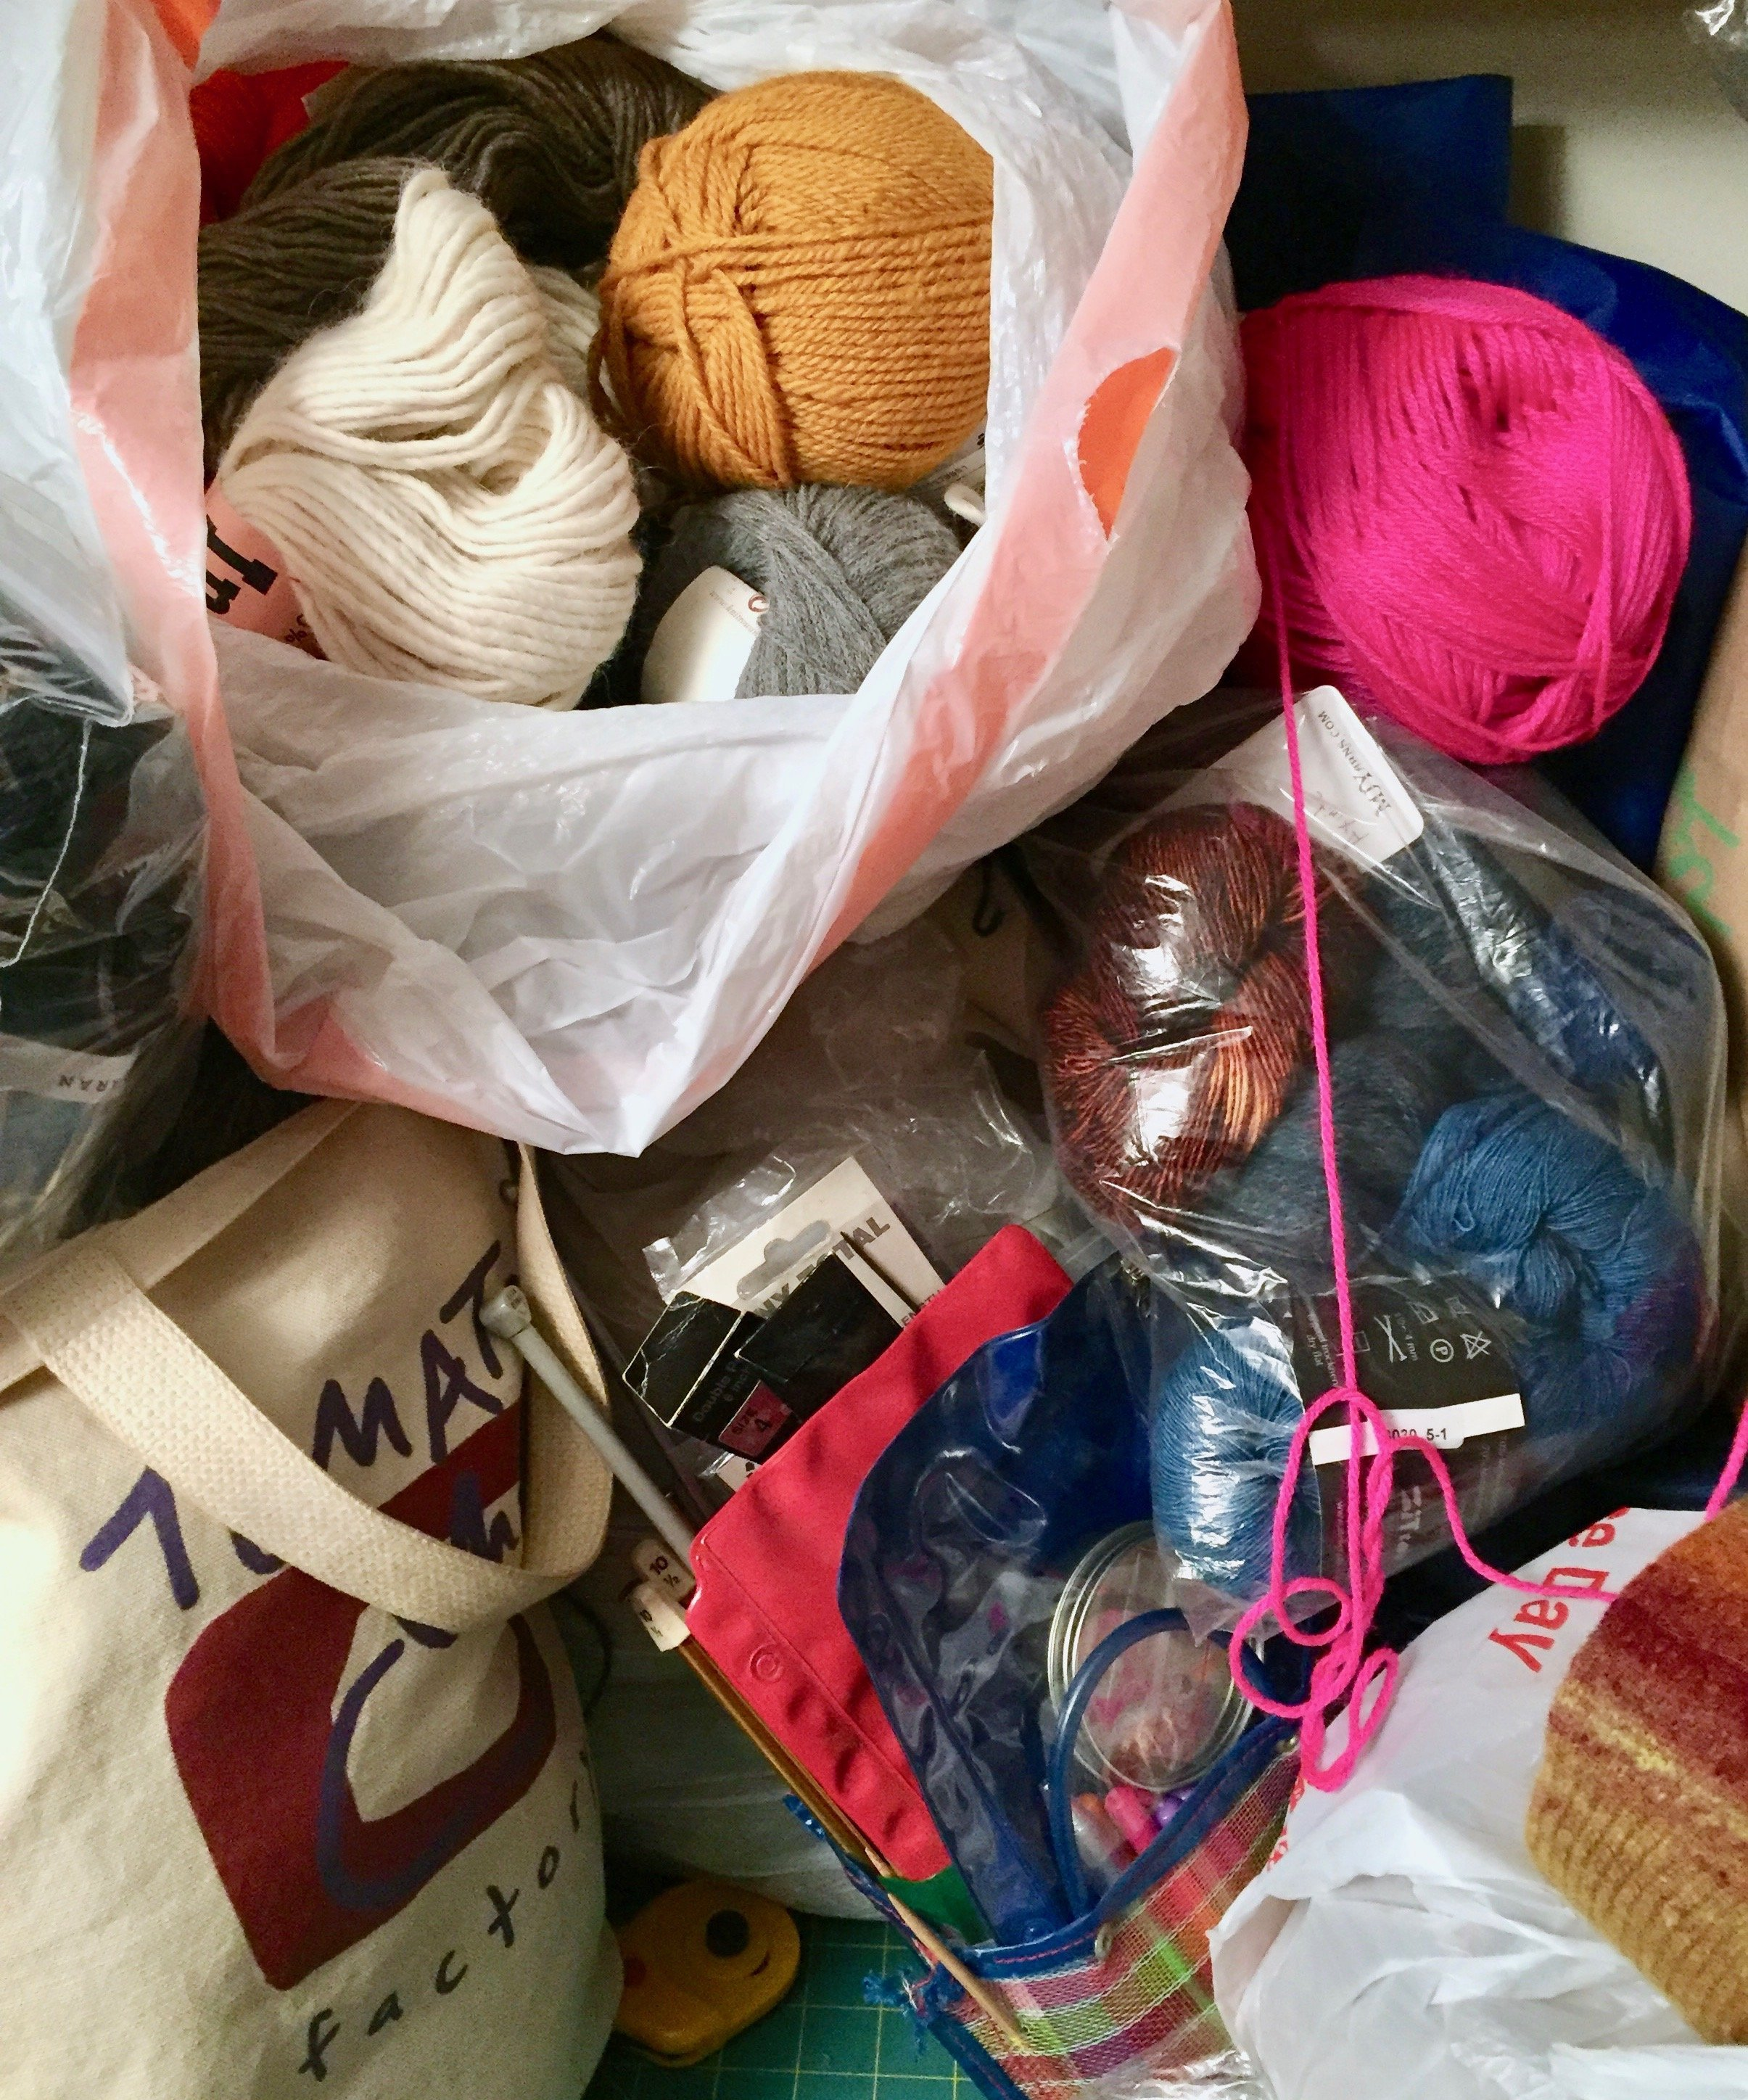 Messy project-filled homes knitters